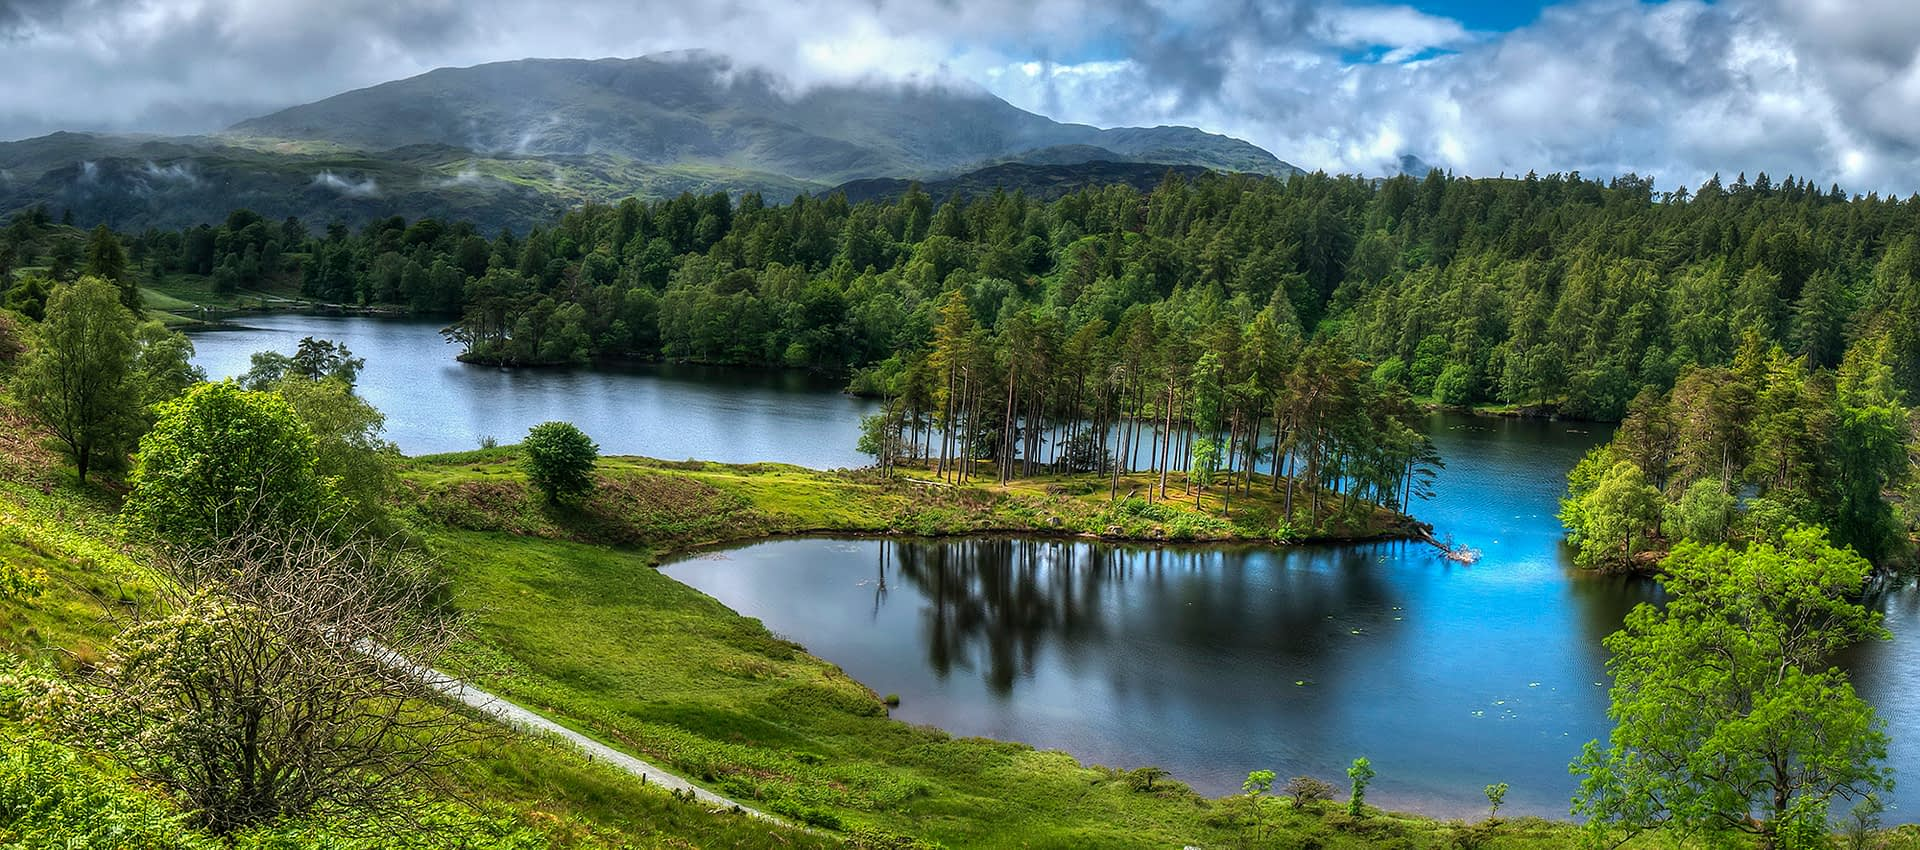 United_Kingdom_Parks_Lake_Forests_Scenery_Lake_520518_3840x2160